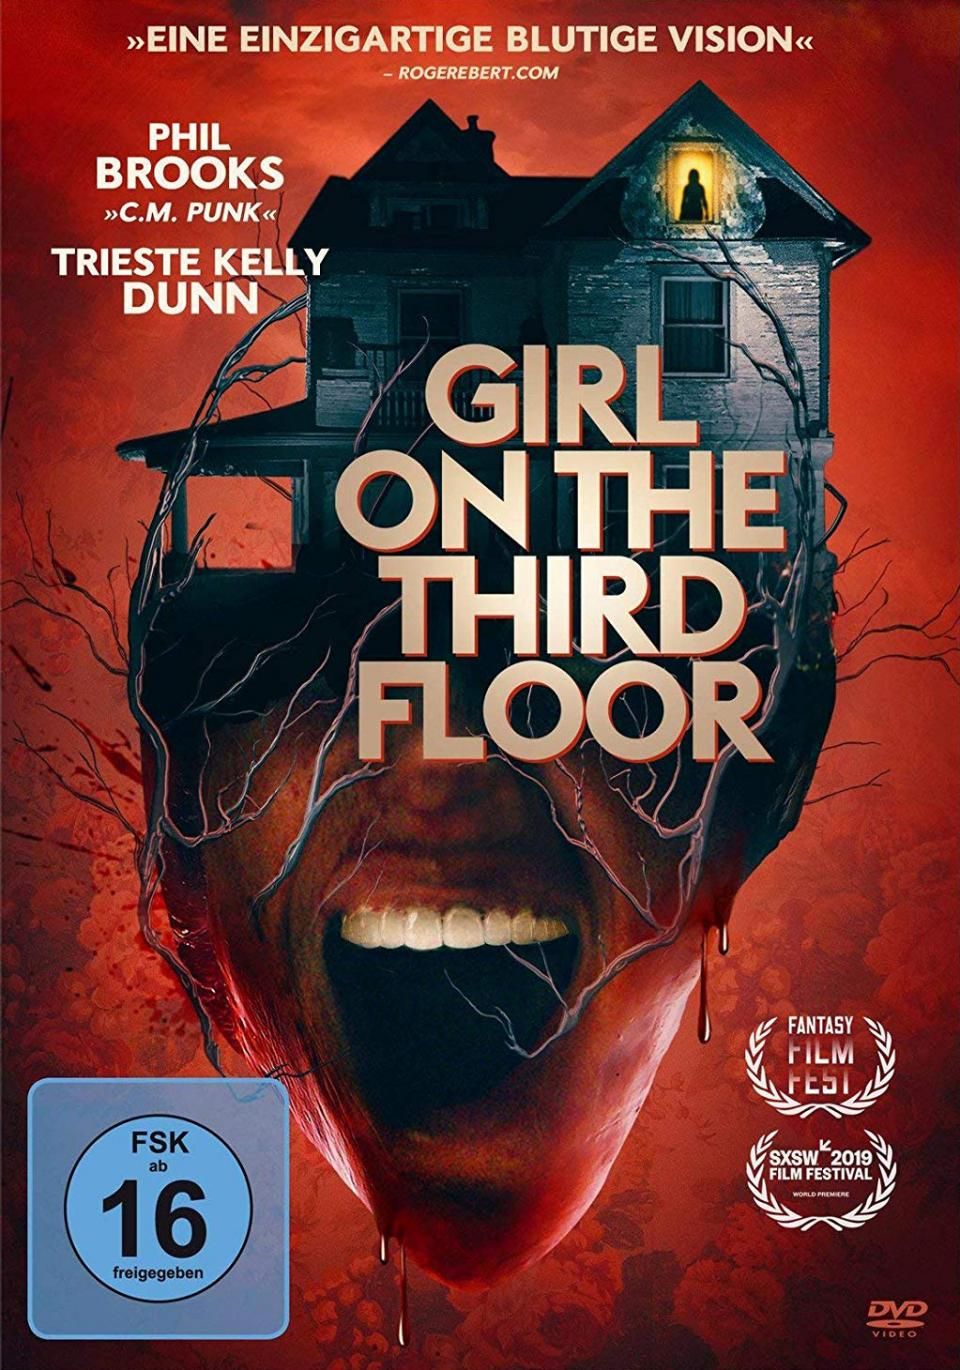 "Gruselhaus-Thriller ""Girl on the Third Floor"" erhält deutschen Starttermin"